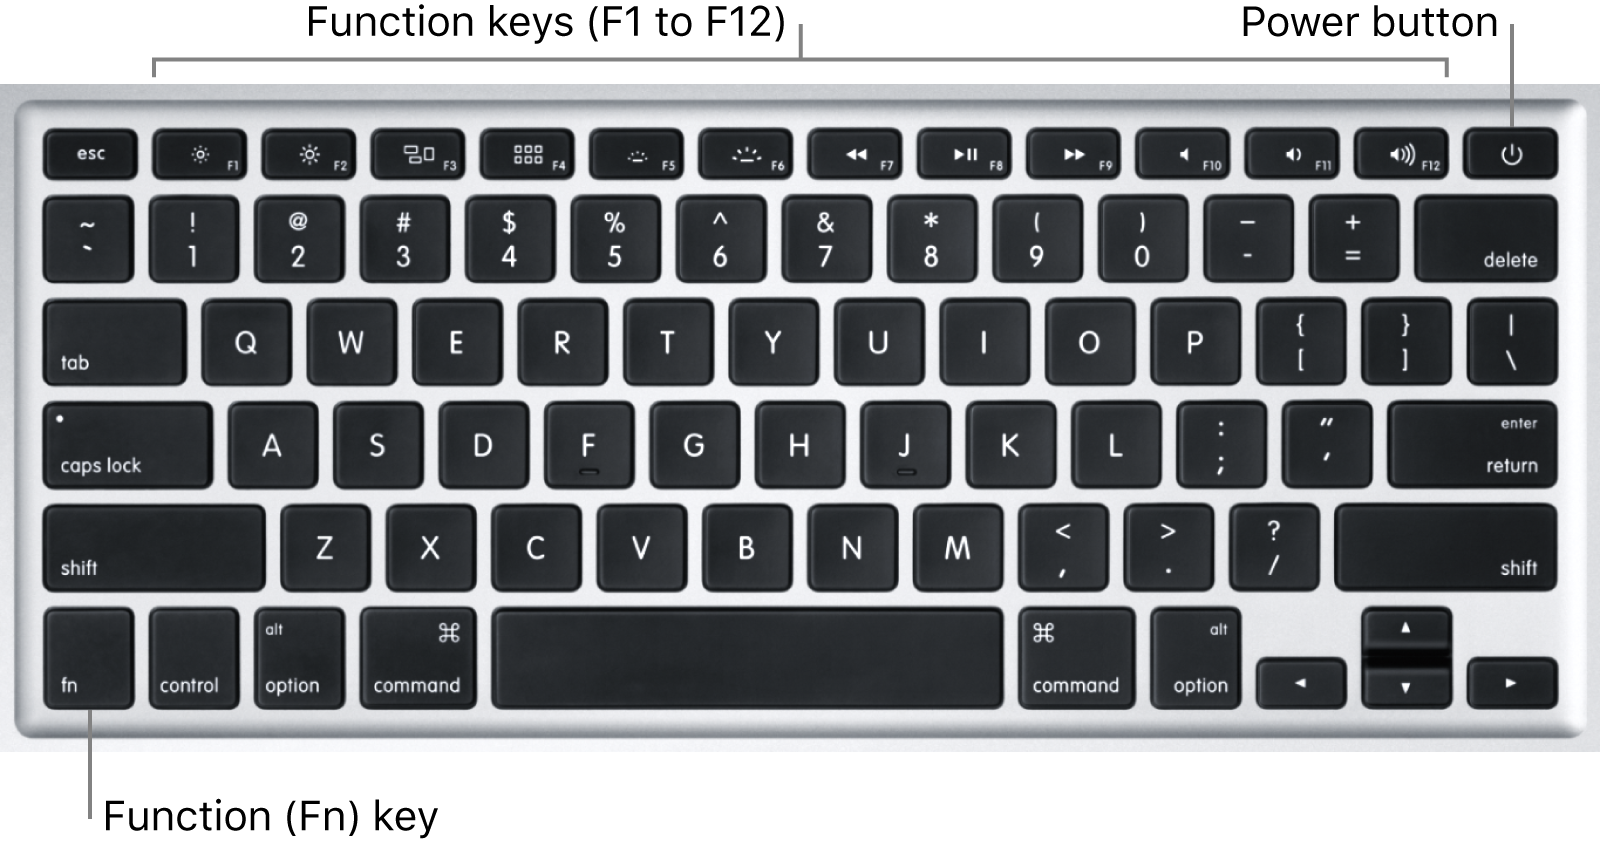 The MacBook Air keyboard showing the row of function keys and the power button across the top, and the Fn function key in the lower left corner.